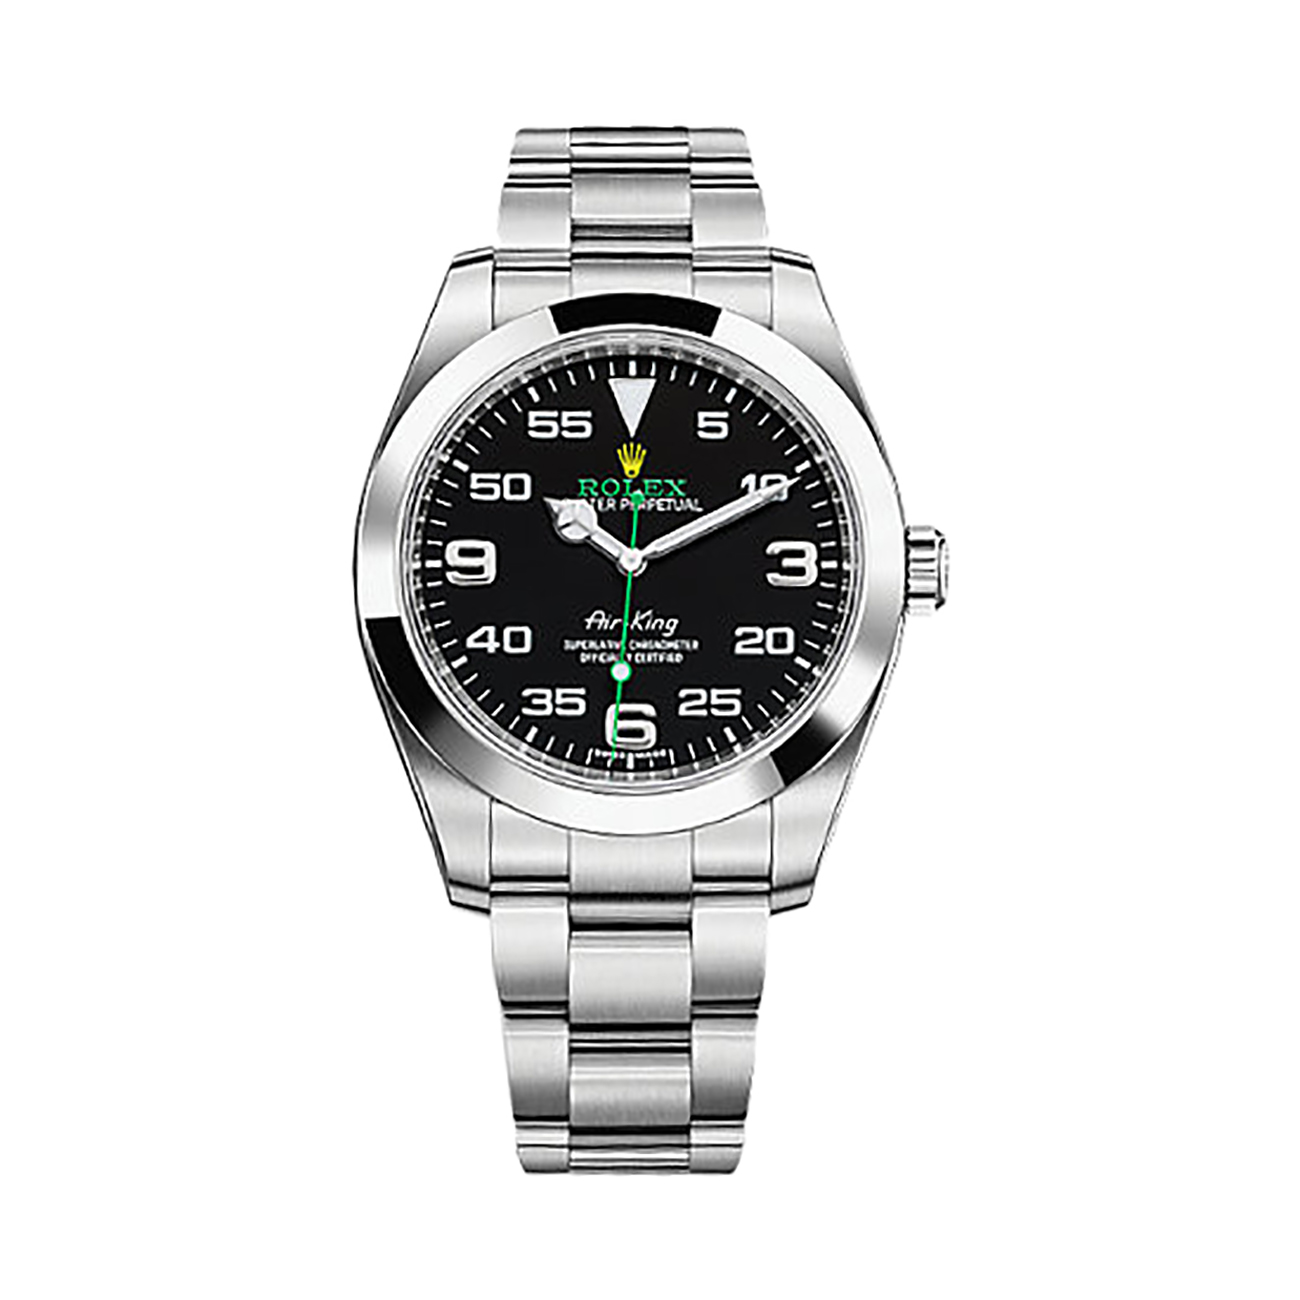 Rolex Air-King, rolex watches, rolex